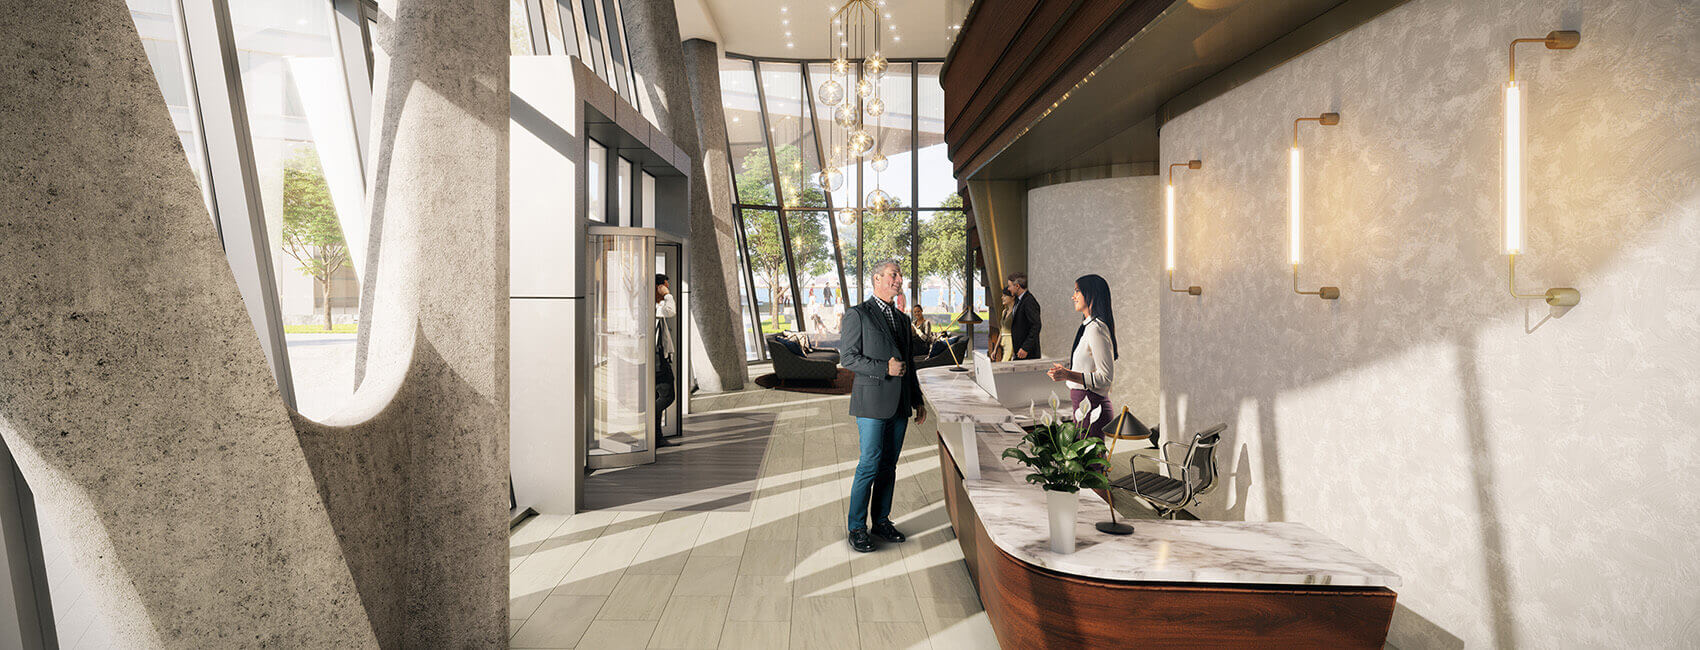 Lobby at PIER 4 Seaport Condos by Tishman Spery